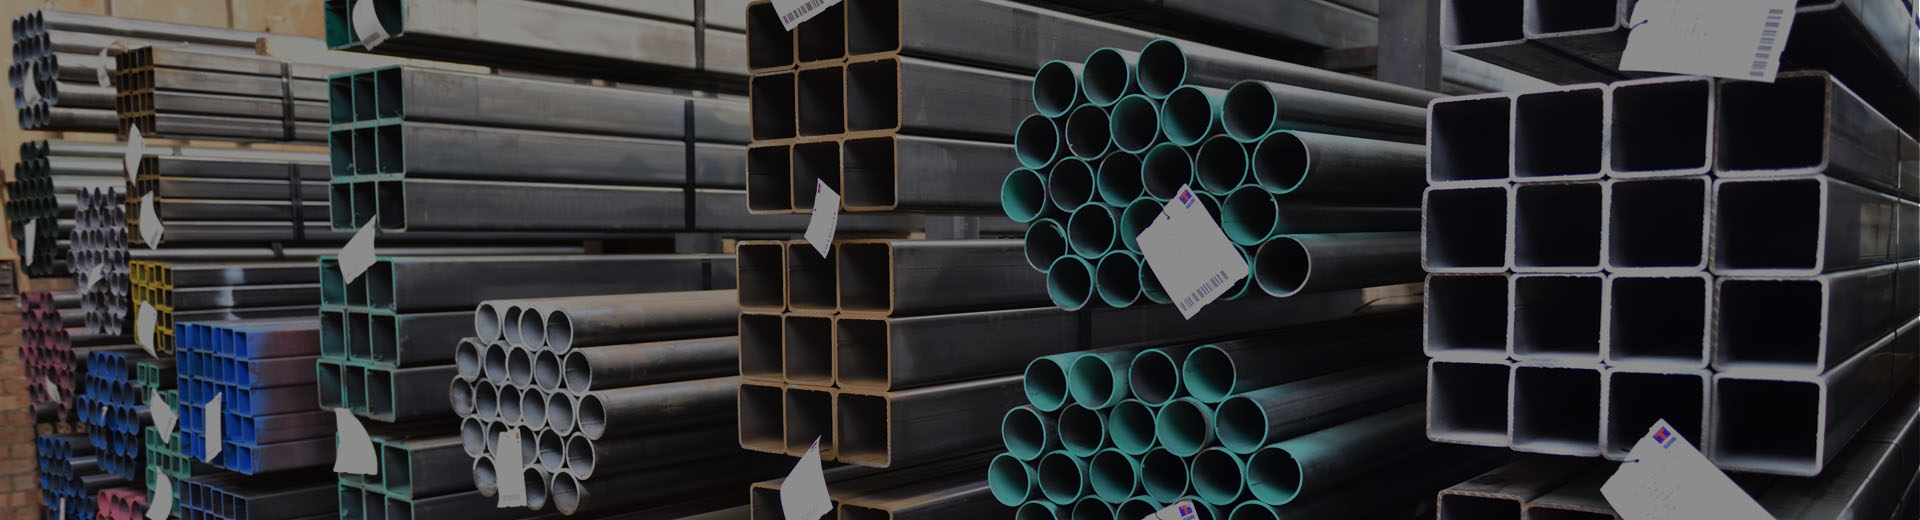 ERW Rectangular Steel Tubes